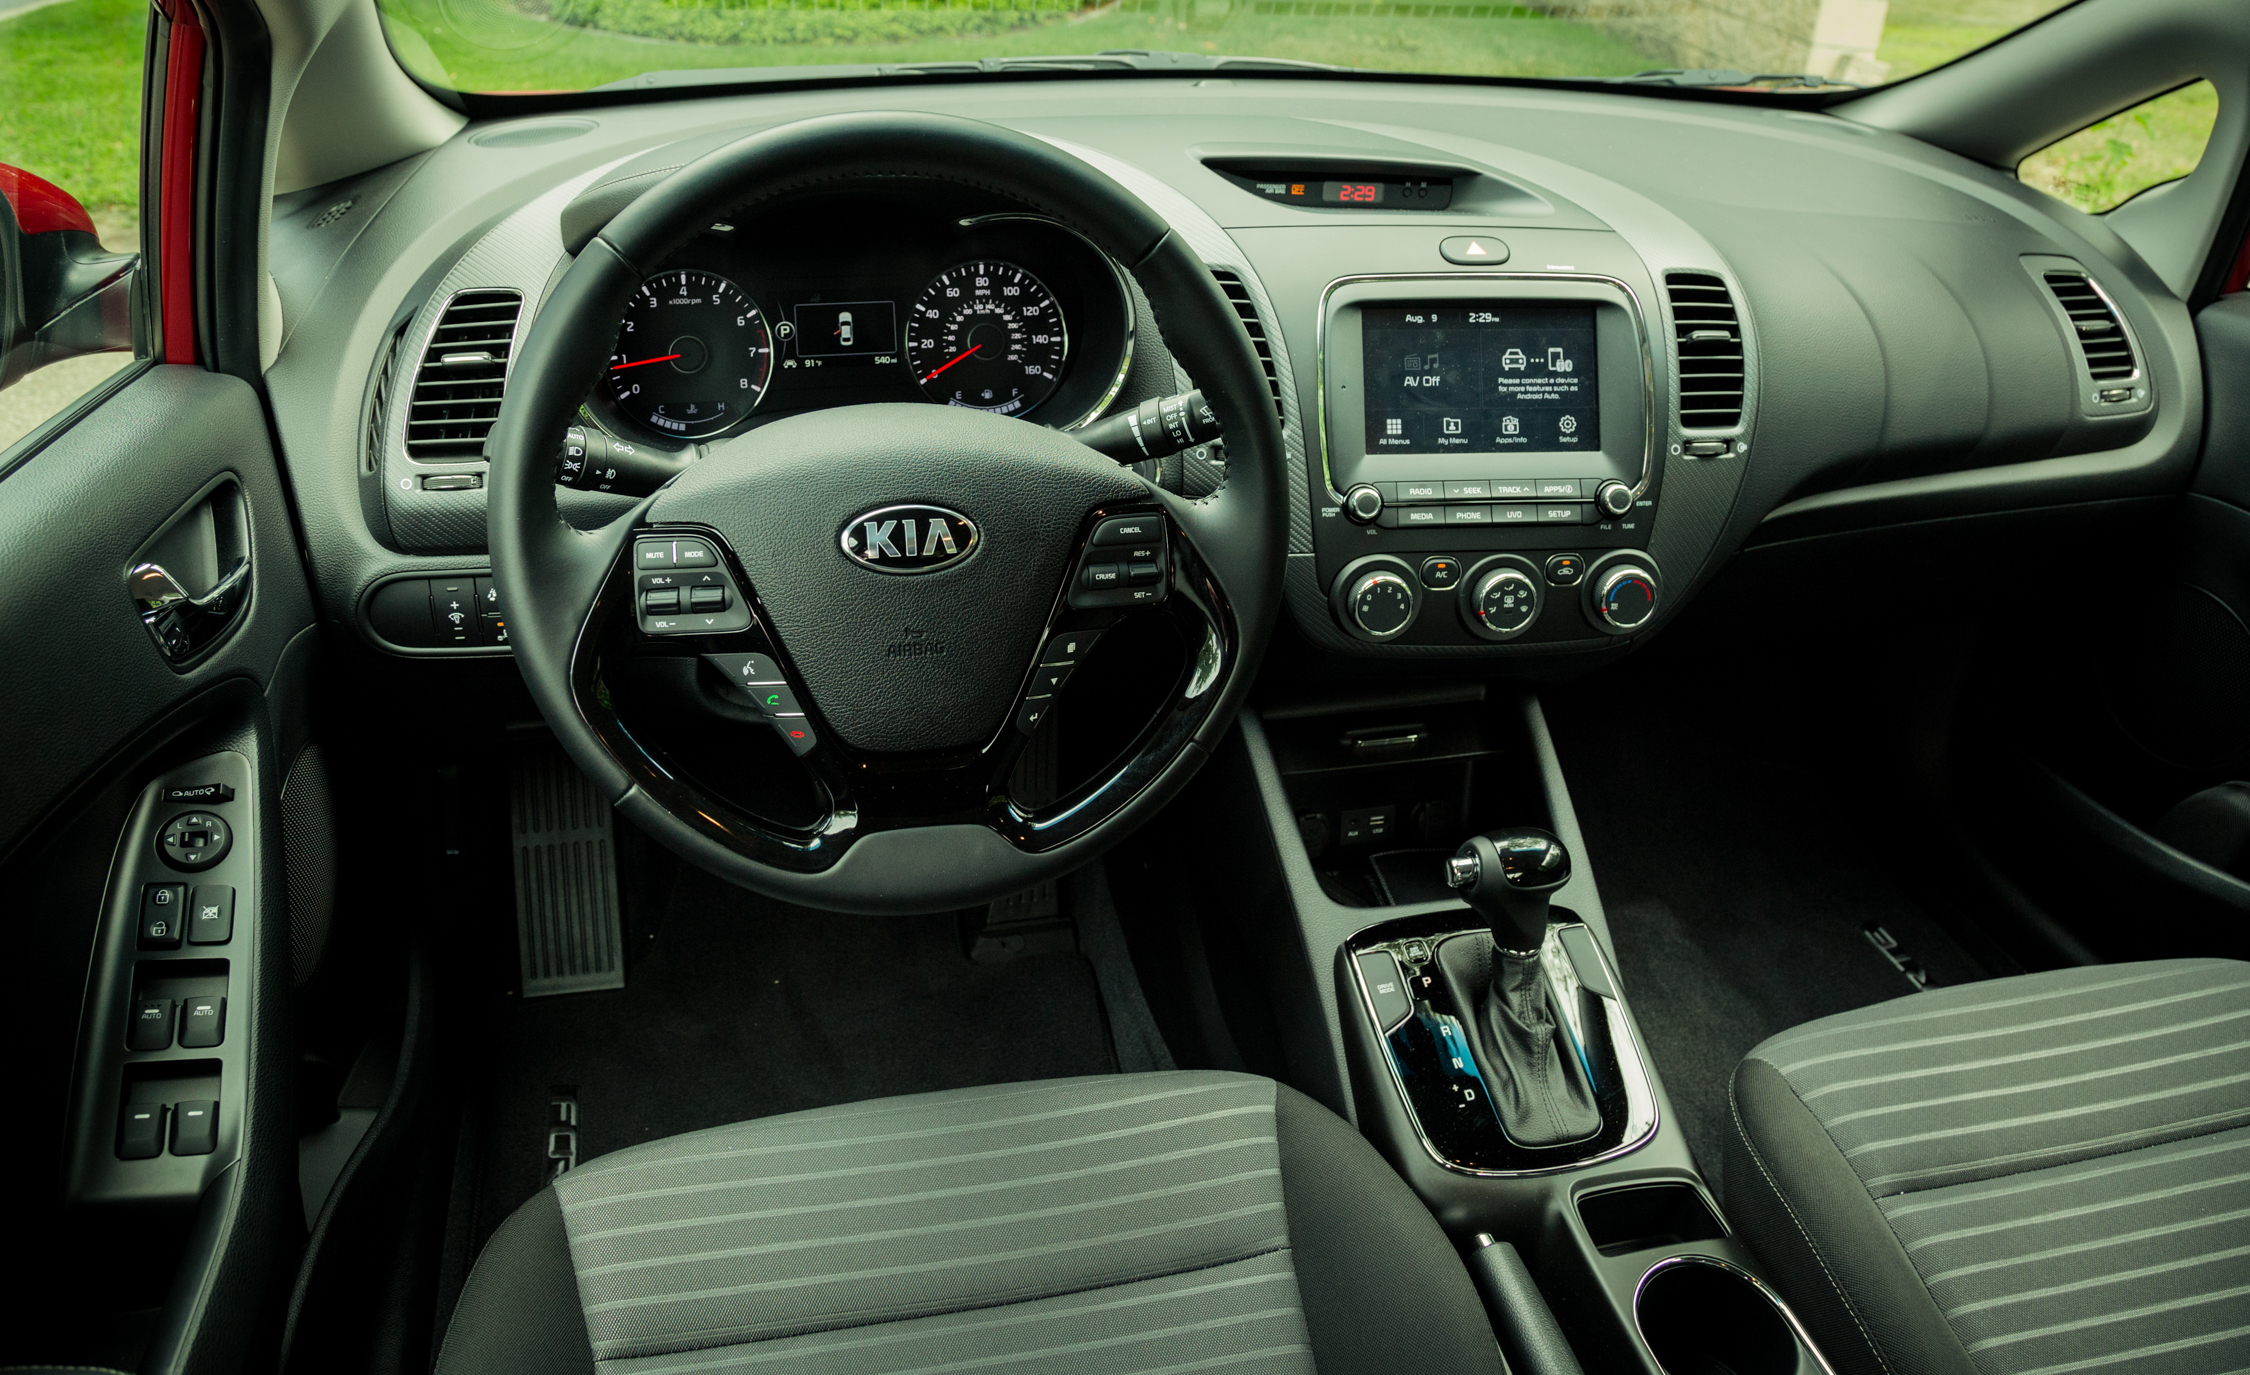 2017 Kia Forte Interior Dashboard (Photo 8 of 13)